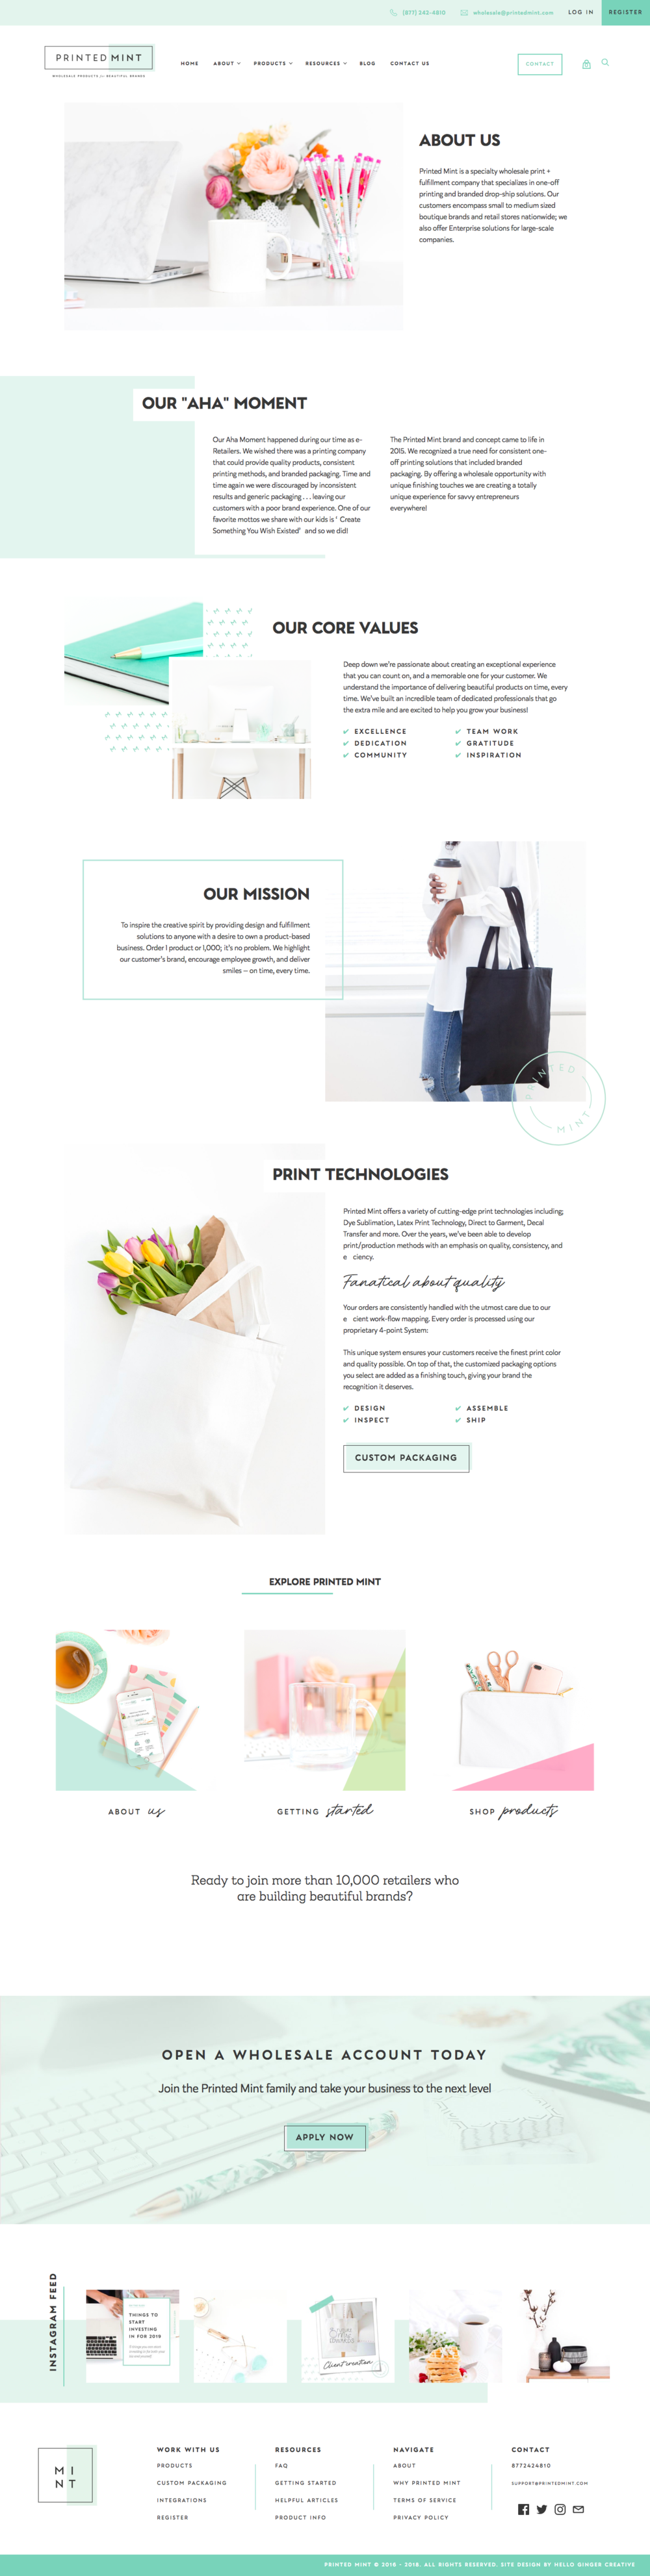 Printed Mint's About Page - Patterned backgrounds, on-brand colored overlays, strategically placed logos, and different image perspectives (pulled back, close-up, lifestyle, flatlay) offer a unique look to your visuals. Be sure to choose images of a similar color palette in order to keep the different elements cohesive.